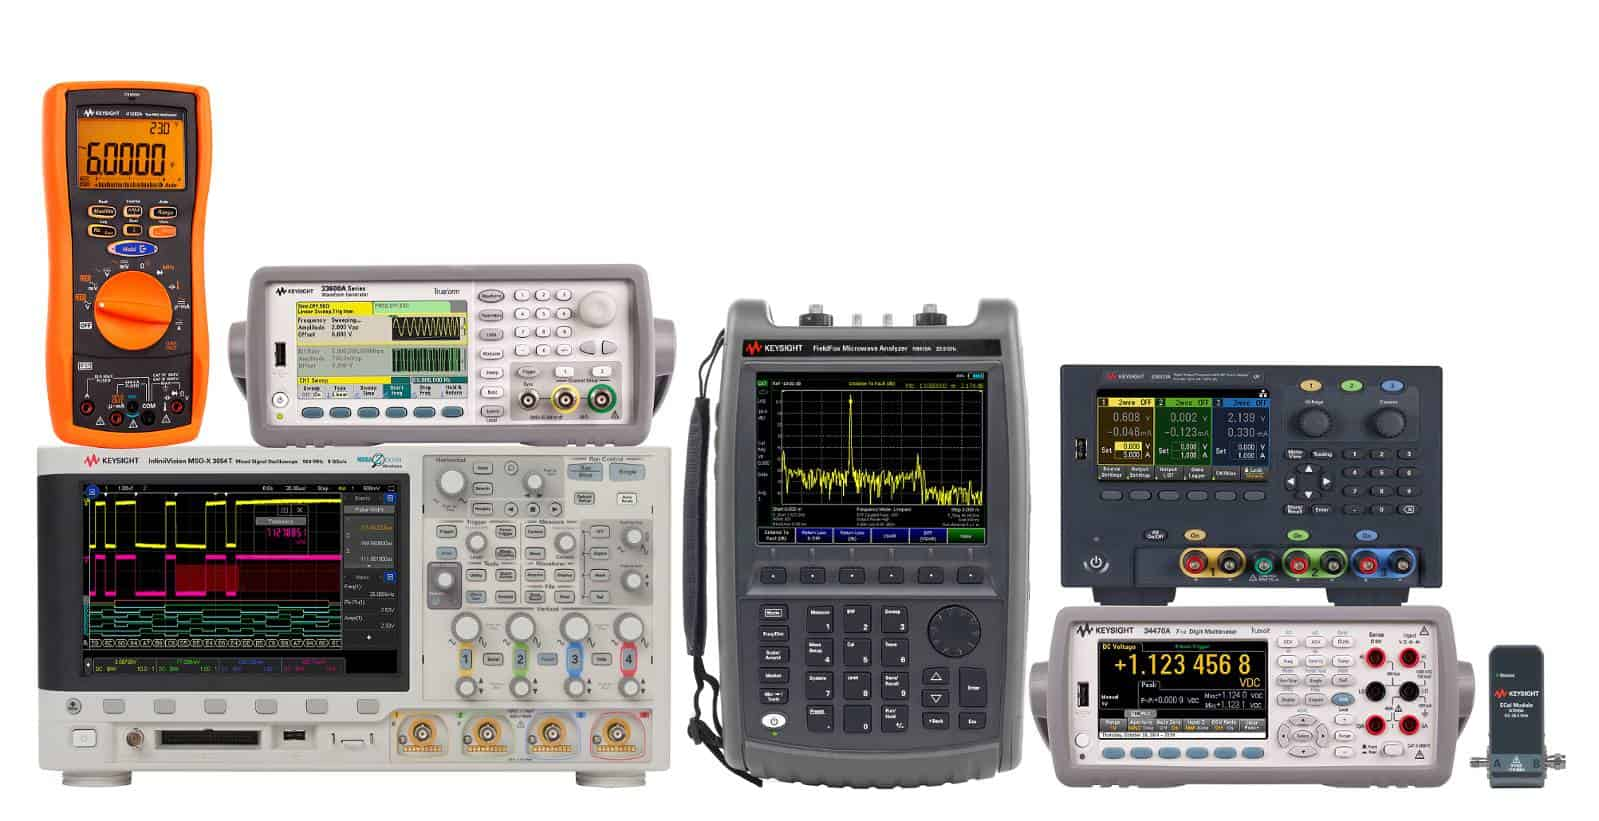 gap wireless keysight authorized dealer